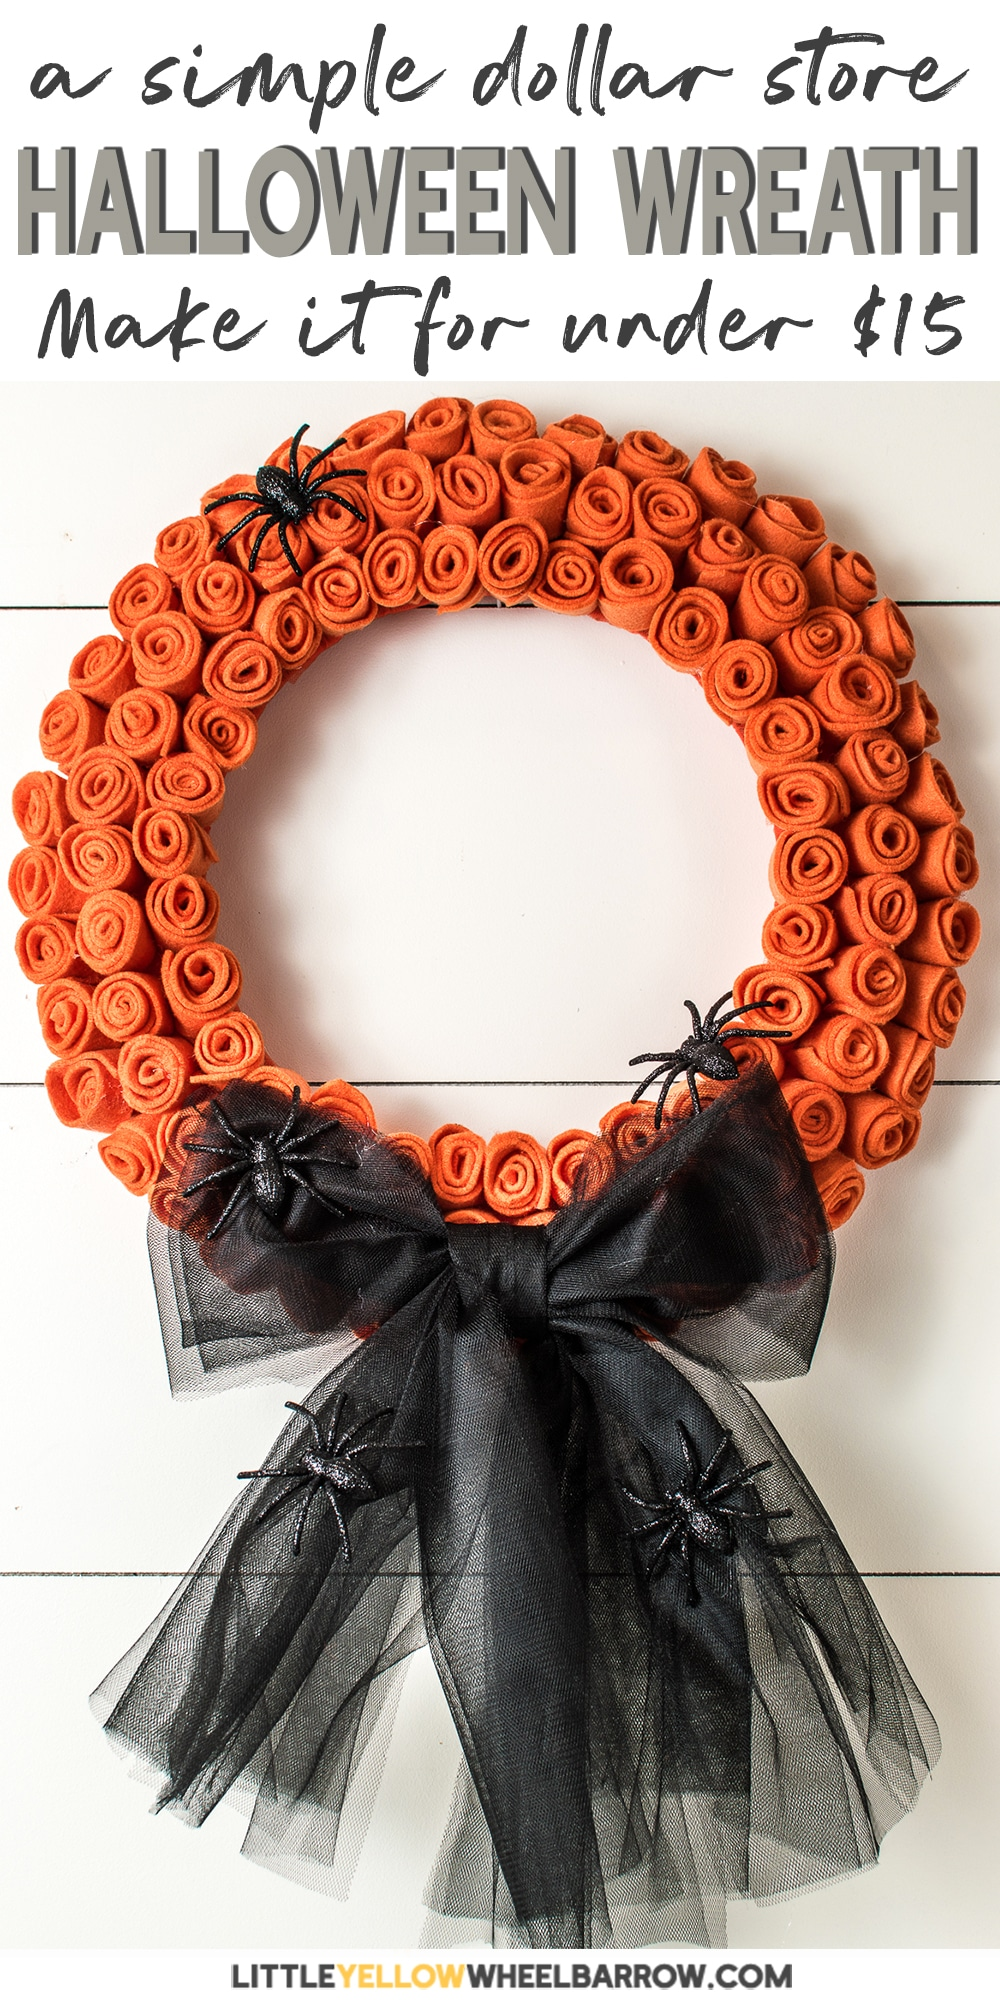 A pretty, but creepy DIY Halloween wreath you can create with supplies from your local dollar store. Made with felt and tulle, it\'s very inexpensive to craft, but the results are beautiful. Craft this wreath for Halloween by adding a black bow and some creepy crawly spiders, or craft for fall and add a pretty burlap bow. It only takes about an hour and a half, and the best part, you can grab all the supplies for under $15.00. #halloween #halloweenwreath #diyhalloweenwreath #halloweencrafts